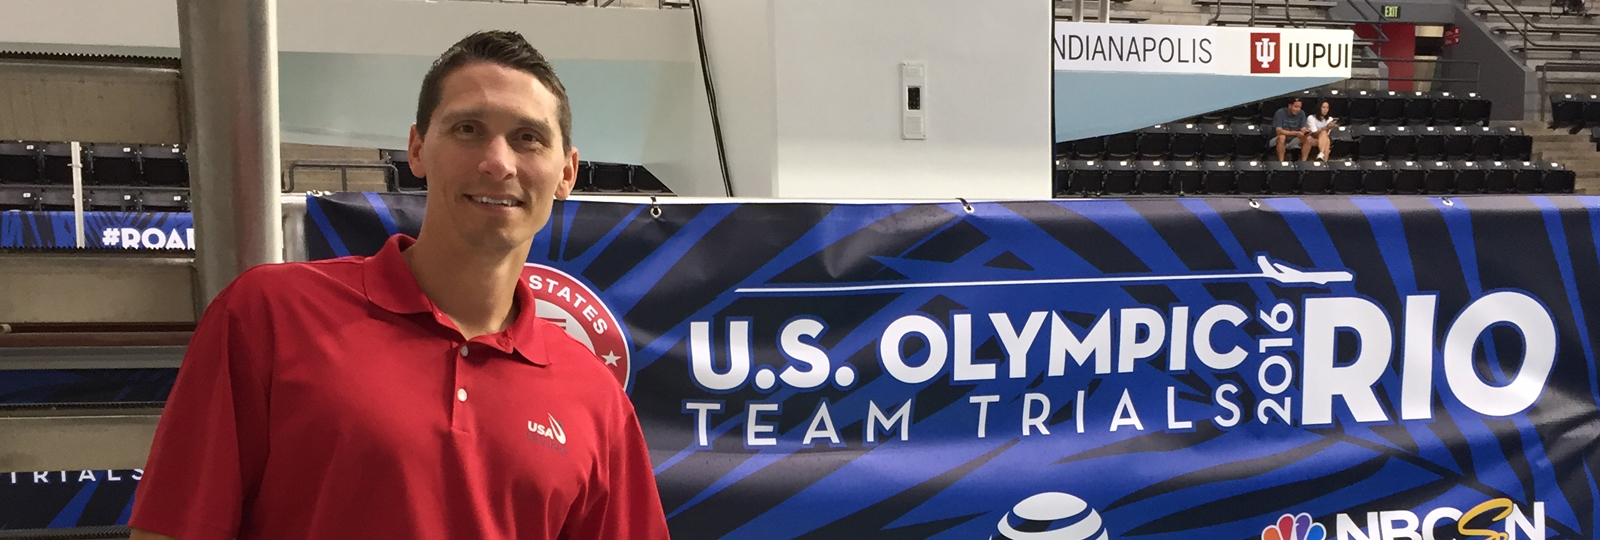 USA Olympic Diving Trials 2016